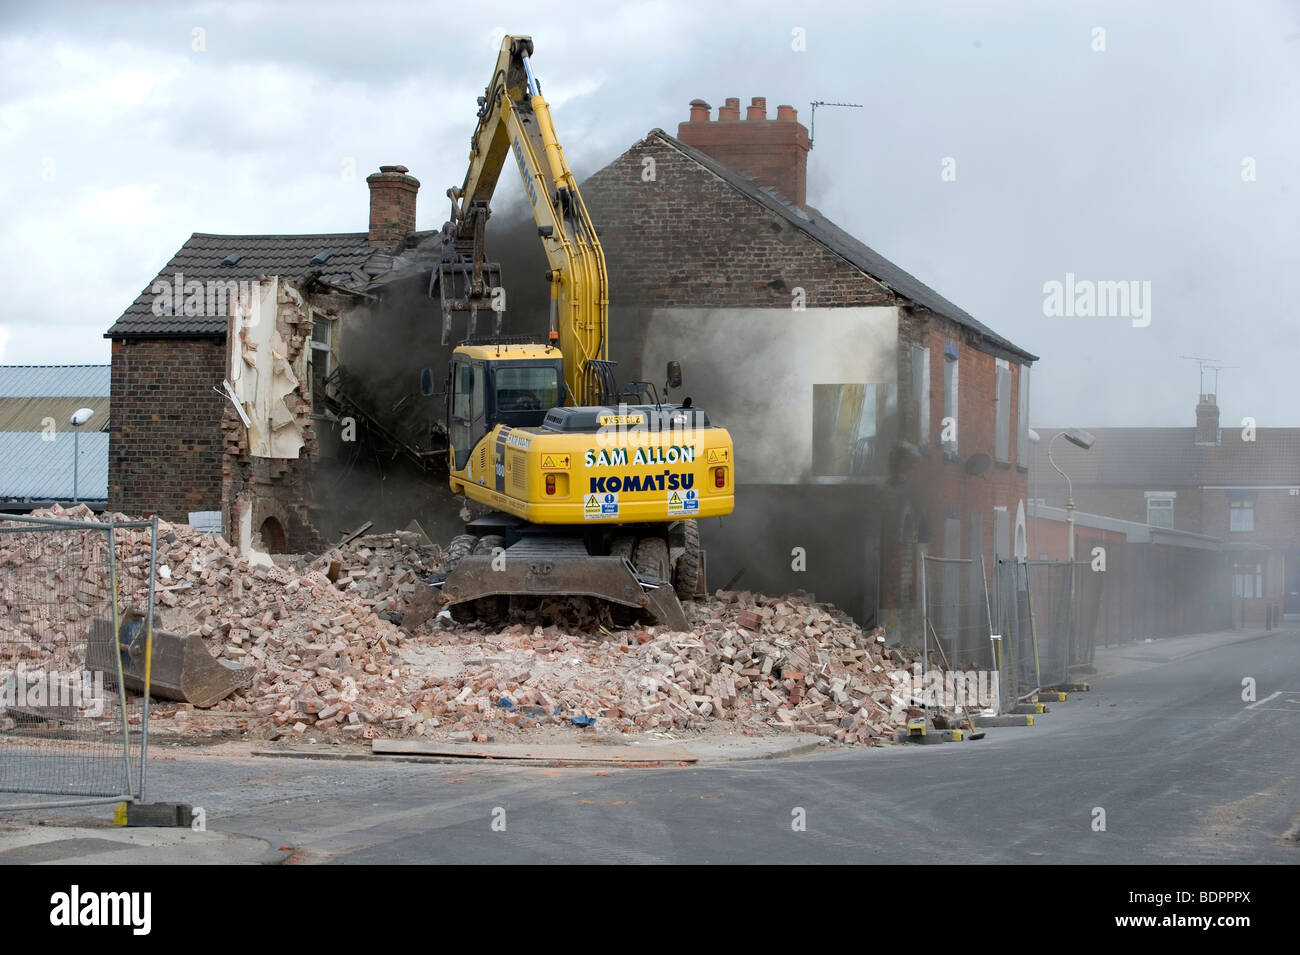 A bulldozer demolishes a terraced home in Yorkshire, UK. - Stock Image